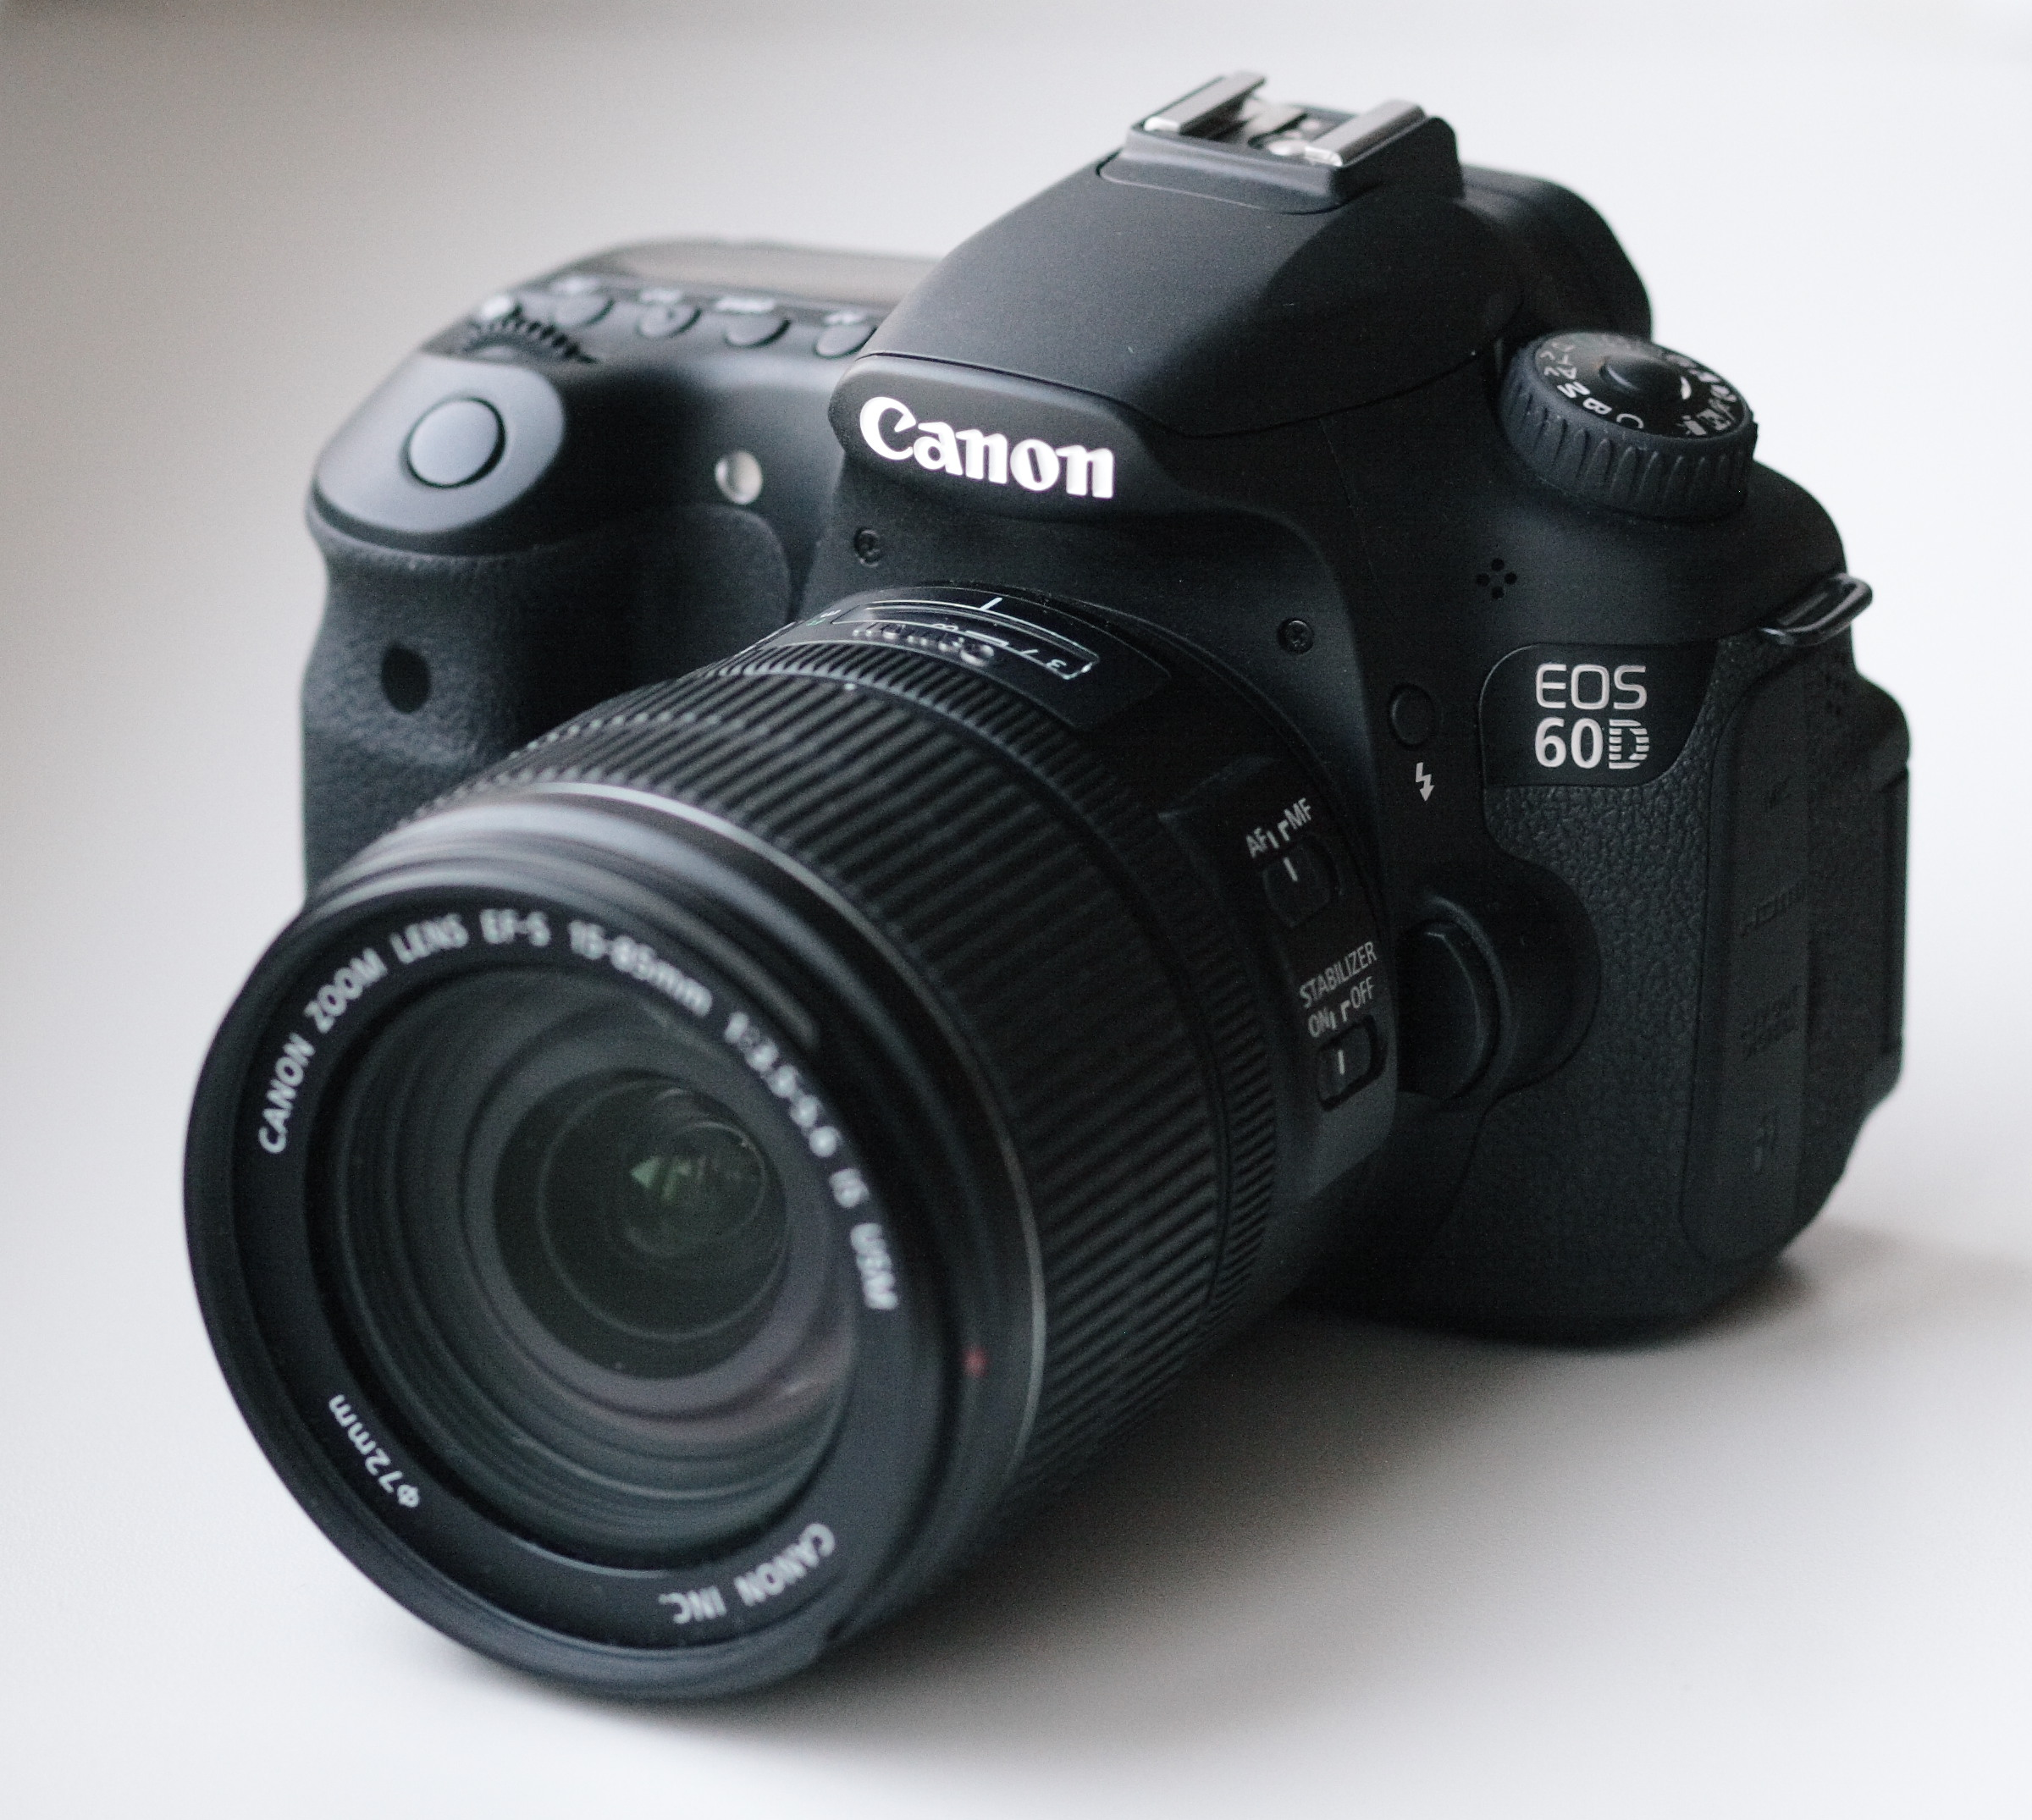 canon eos 60d wikipedia rh en wikipedia org canon 60d instruction manual canon 60d owners manual pdf